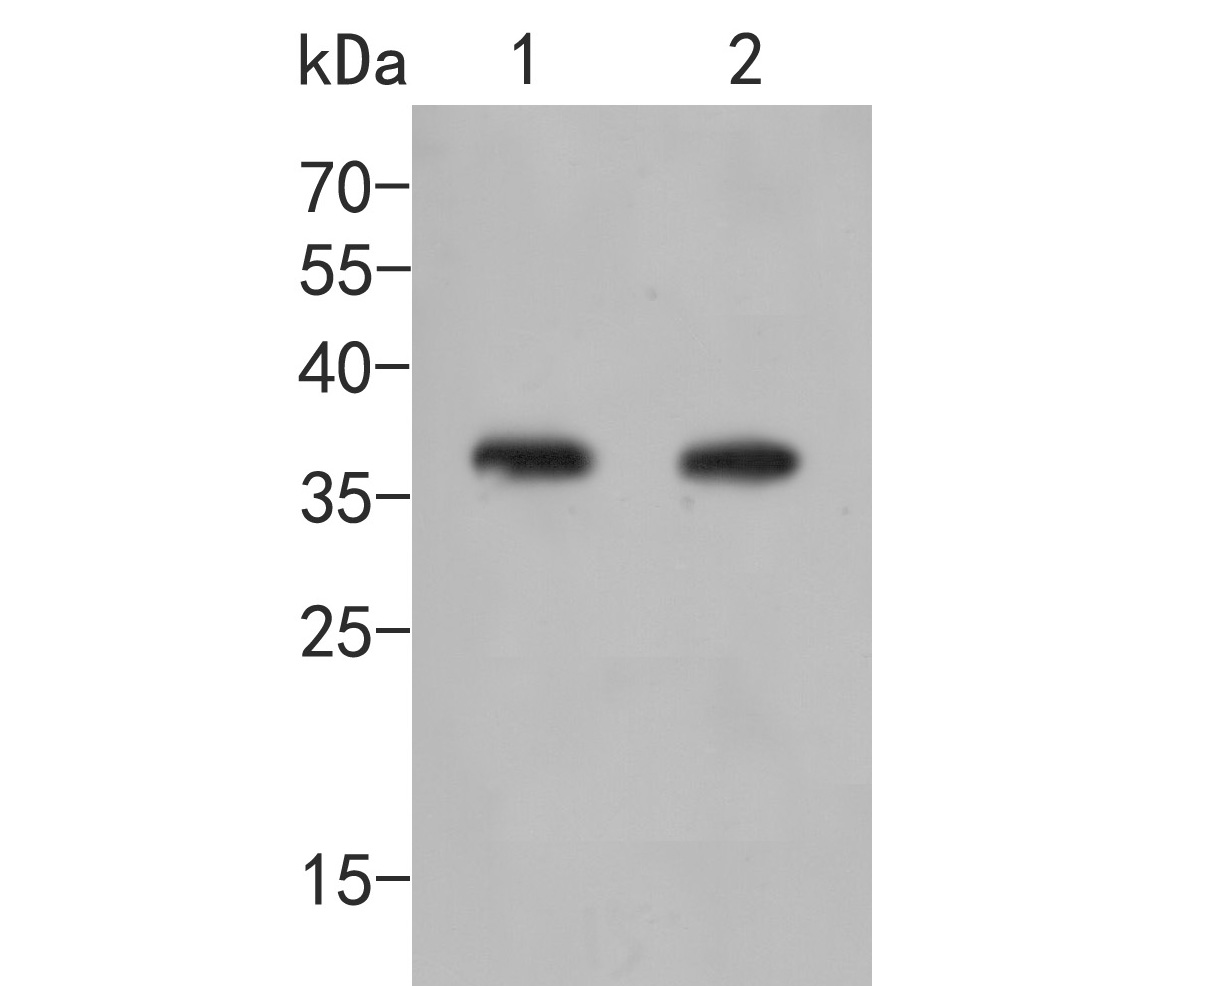 Western blot analysis of AKR1B1 on different lysates. Proteins were transferred to a PVDF membrane and blocked with 5% BSA in PBS for 1 hour at room temperature. The primary antibody (ER2001-27, 1/500) was used in 5% BSA at room temperature for 2 hours. Goat Anti-Rabbit IgG - HRP Secondary Antibody (HA1001) at 1:5,000 dilution was used for 1 hour at room temperature.<br /> Positive control: <br /> Lane 1: Rat skeletal muscle tissue lysate<br /> Lane 2: A549 cell lysate